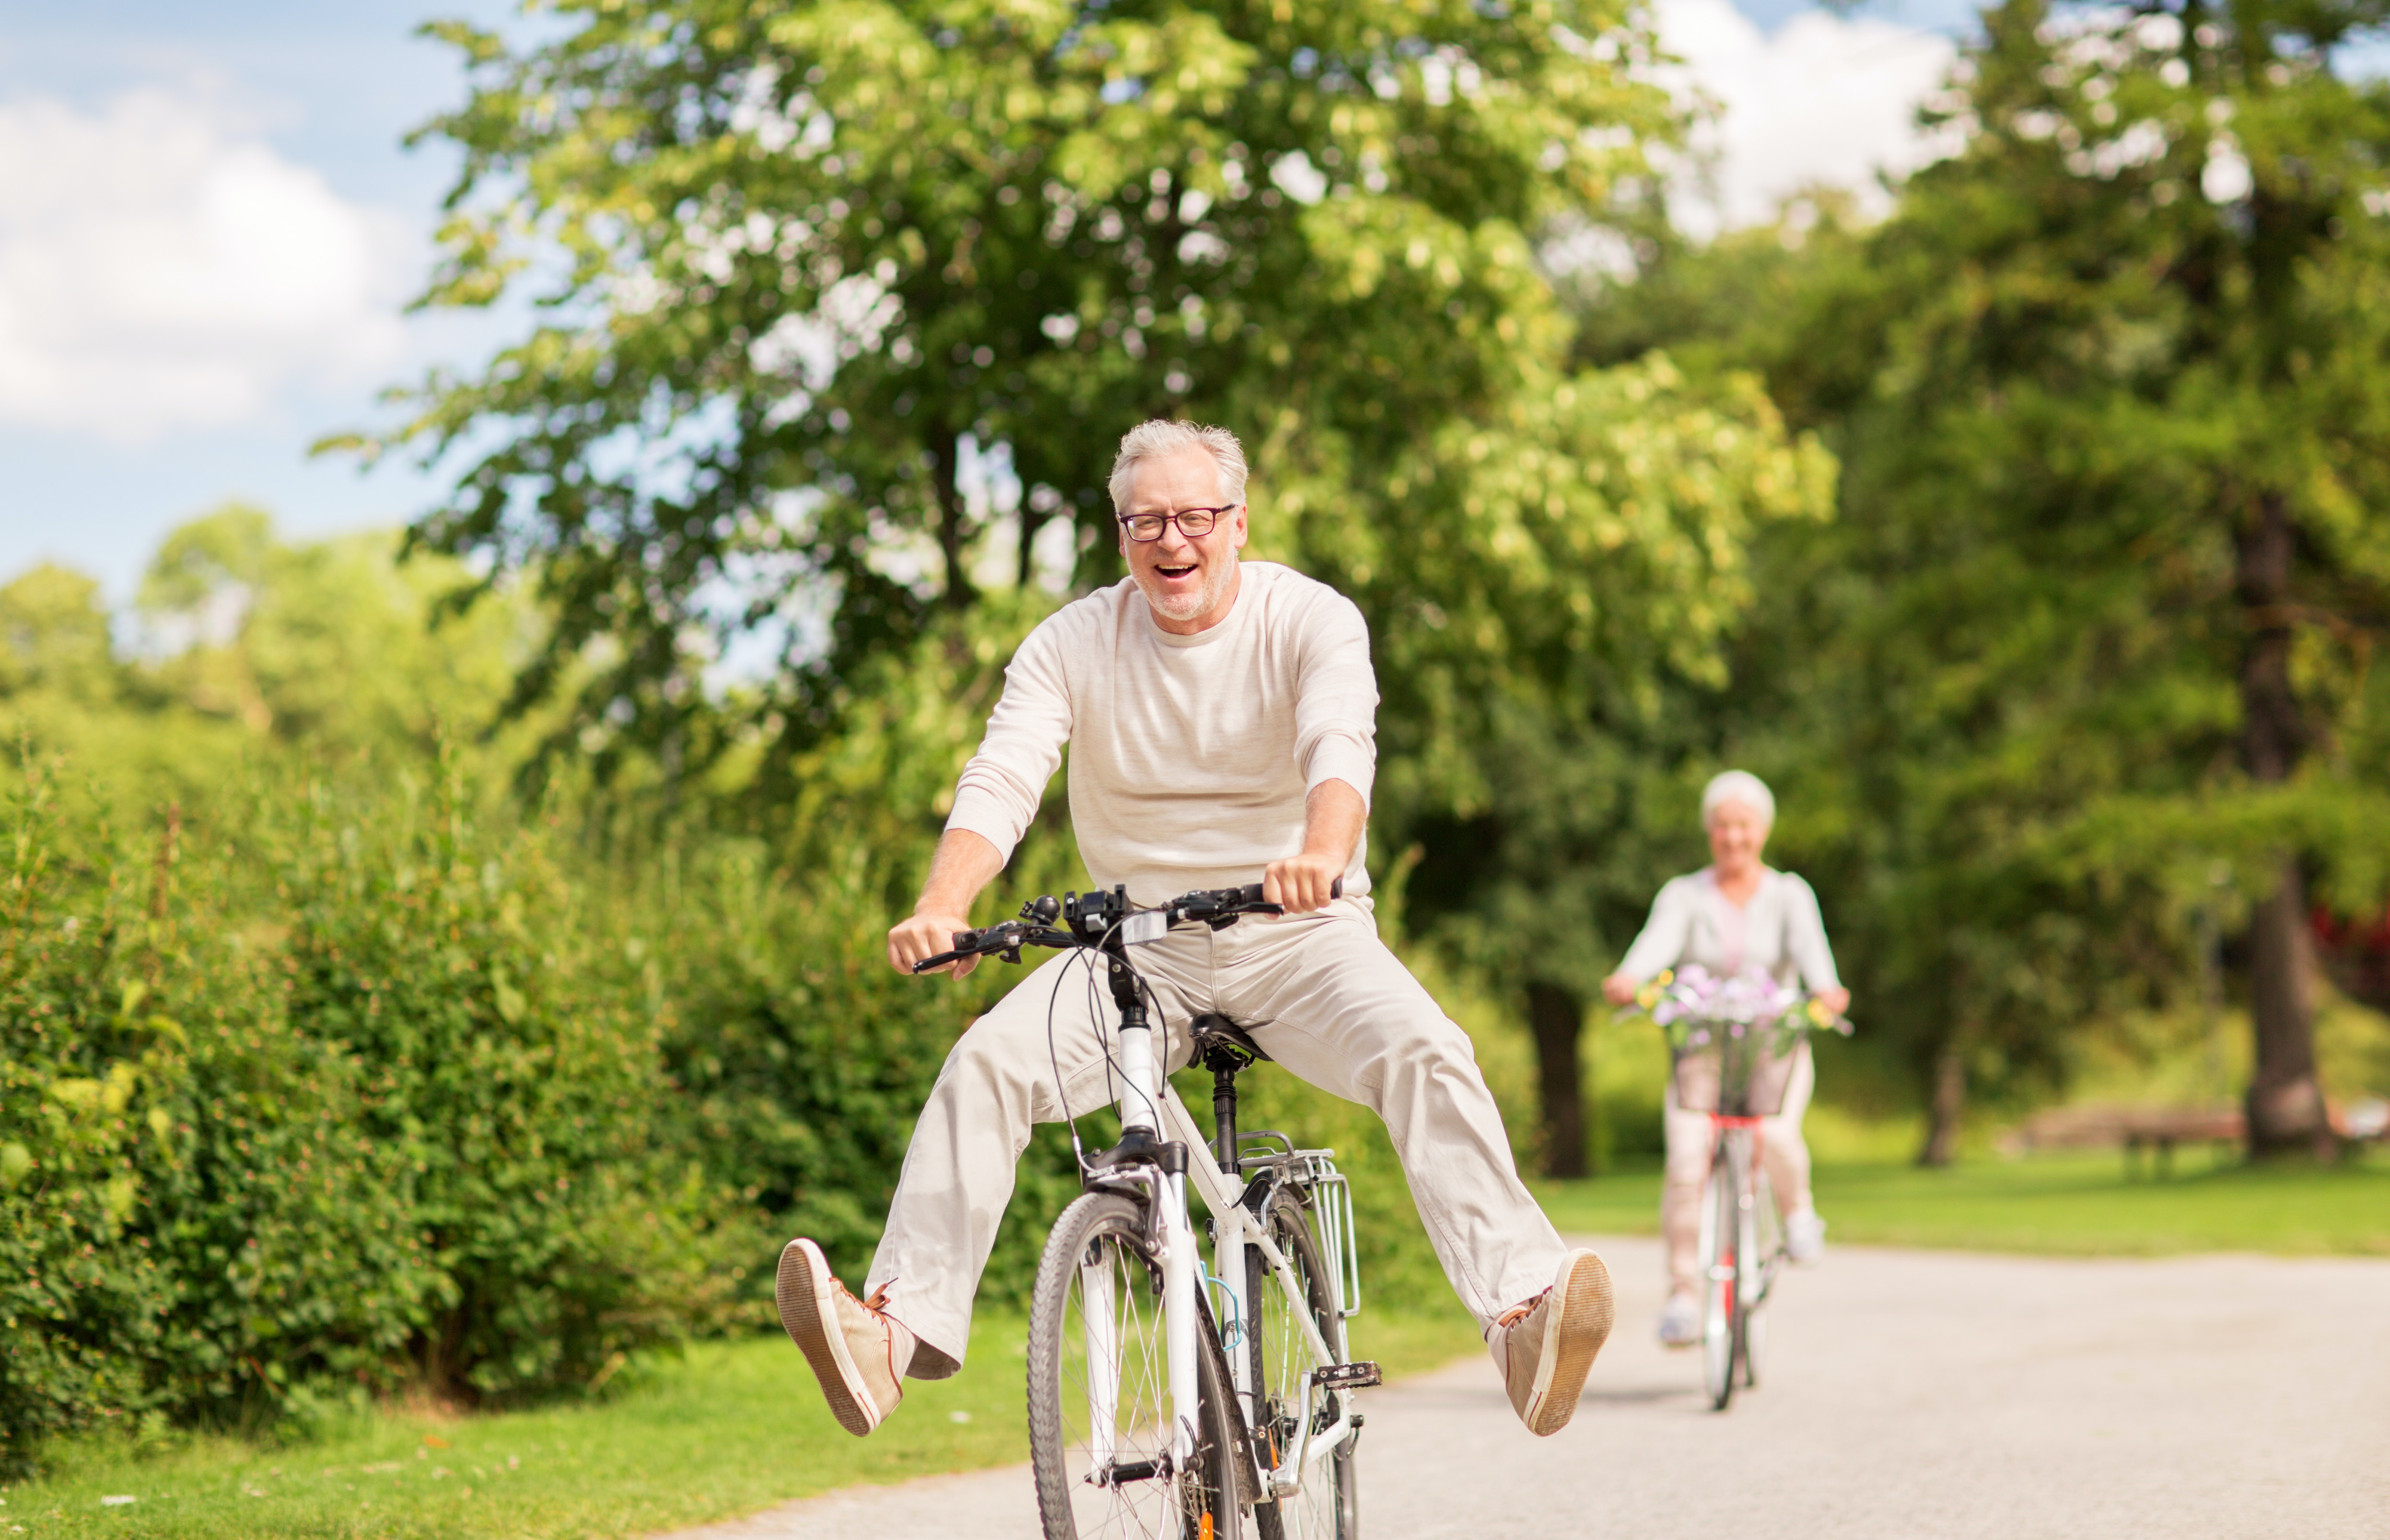 Older over 50s couple riding bikes happily through a park